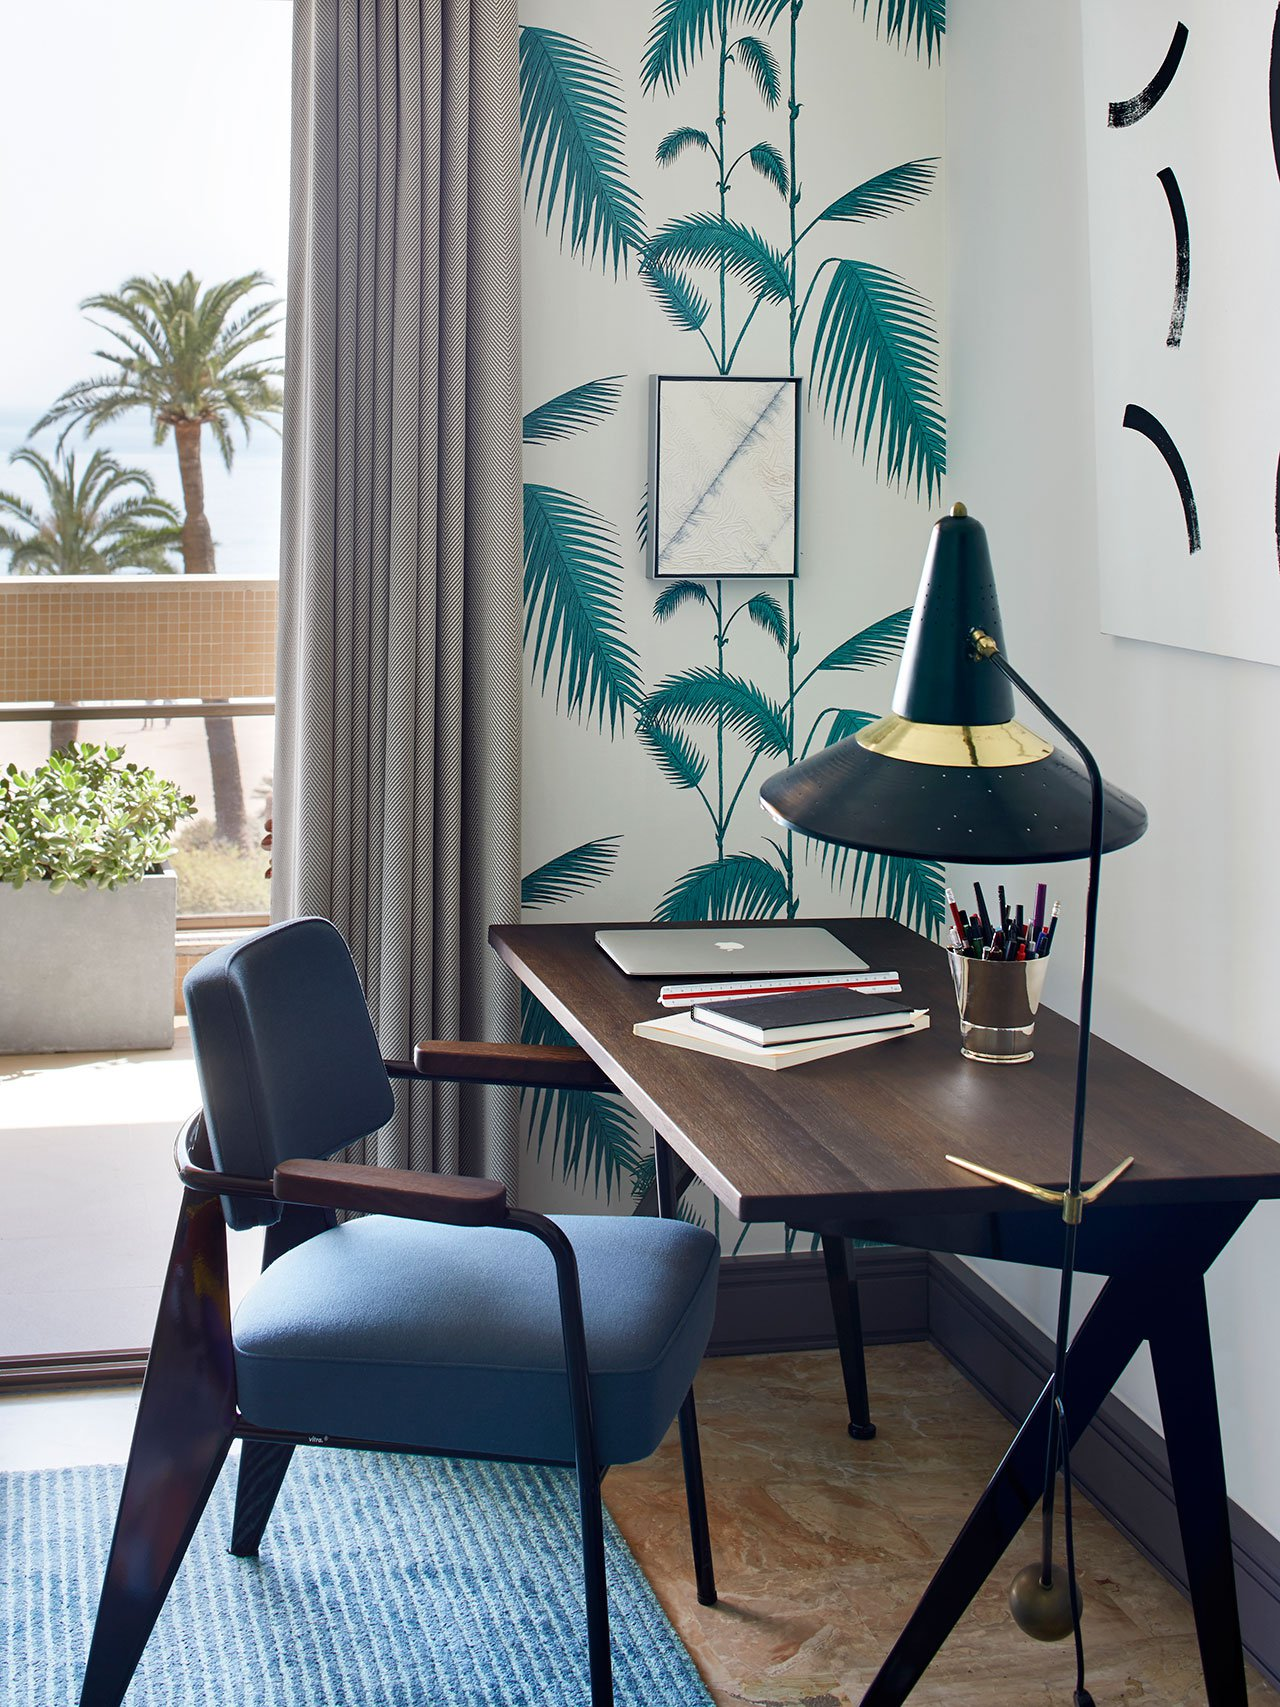 Timeless Luxury Apartment in Monaco Filled with Mid-Century Lighting 3 mid-century lighting Timeless Luxury Apartment in Monaco Filled with Mid-Century Lighting Timeless Luxury Apartment in Monaco Filled with Mid Century Lighting 12